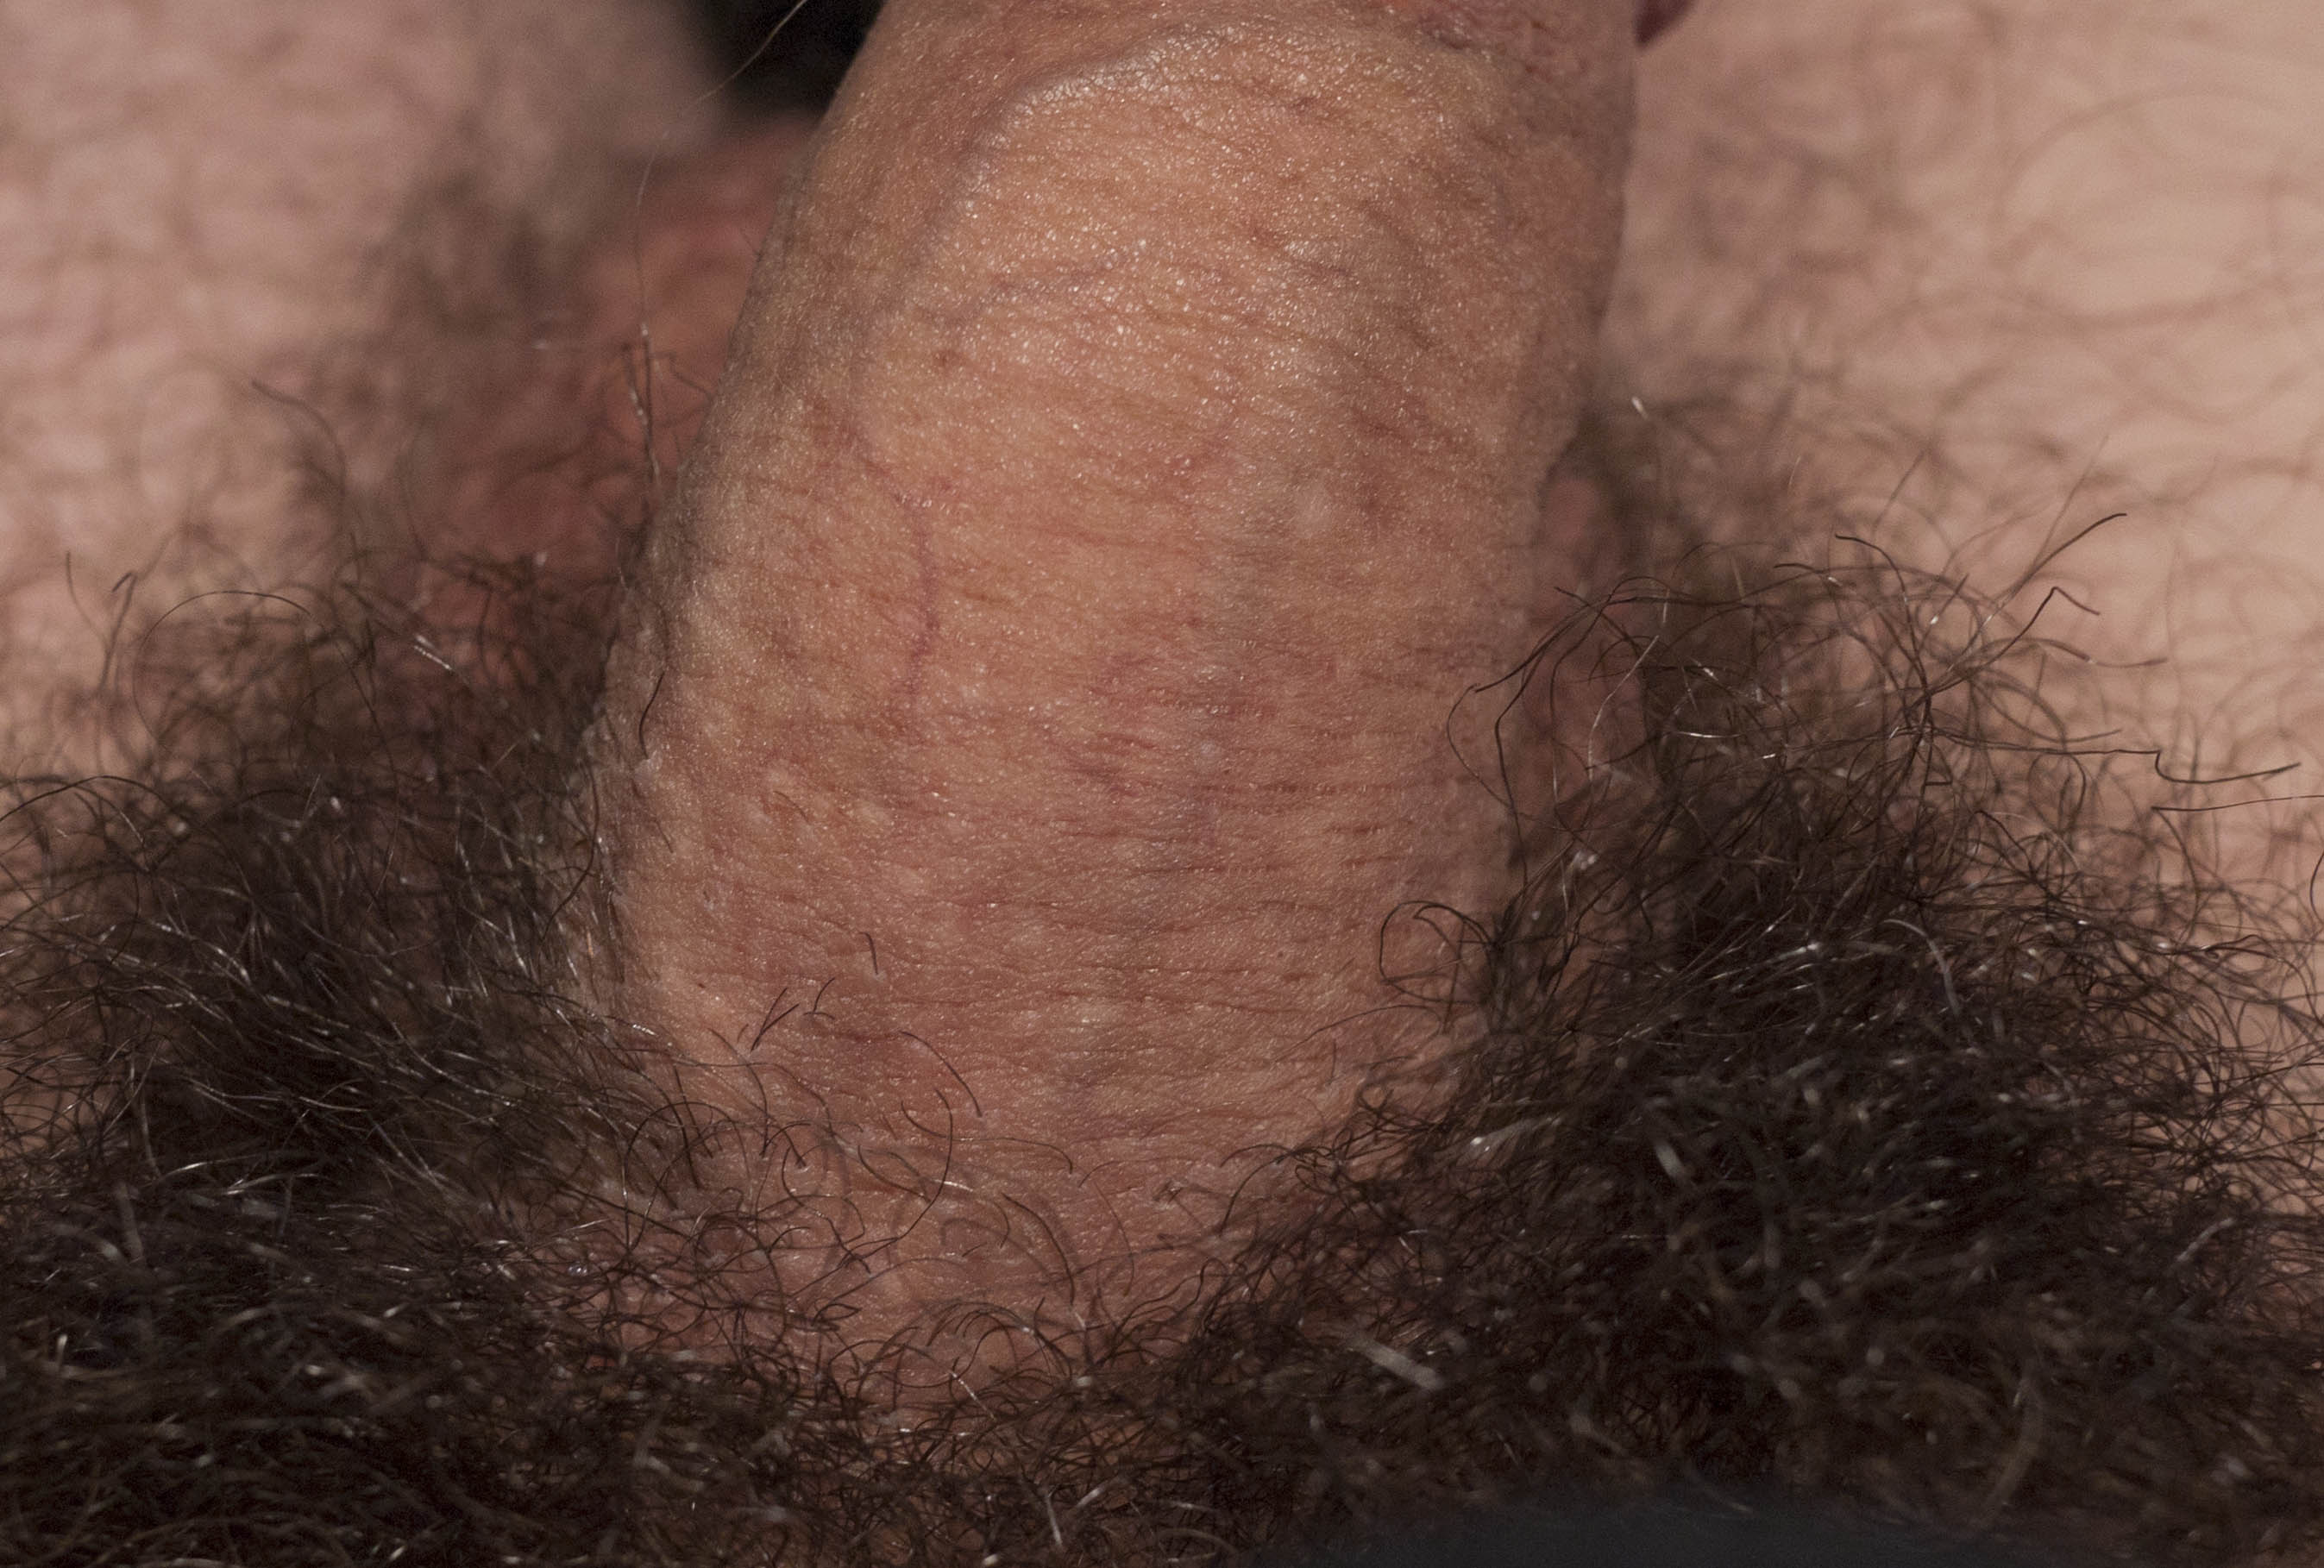 White bumbs on penis with you